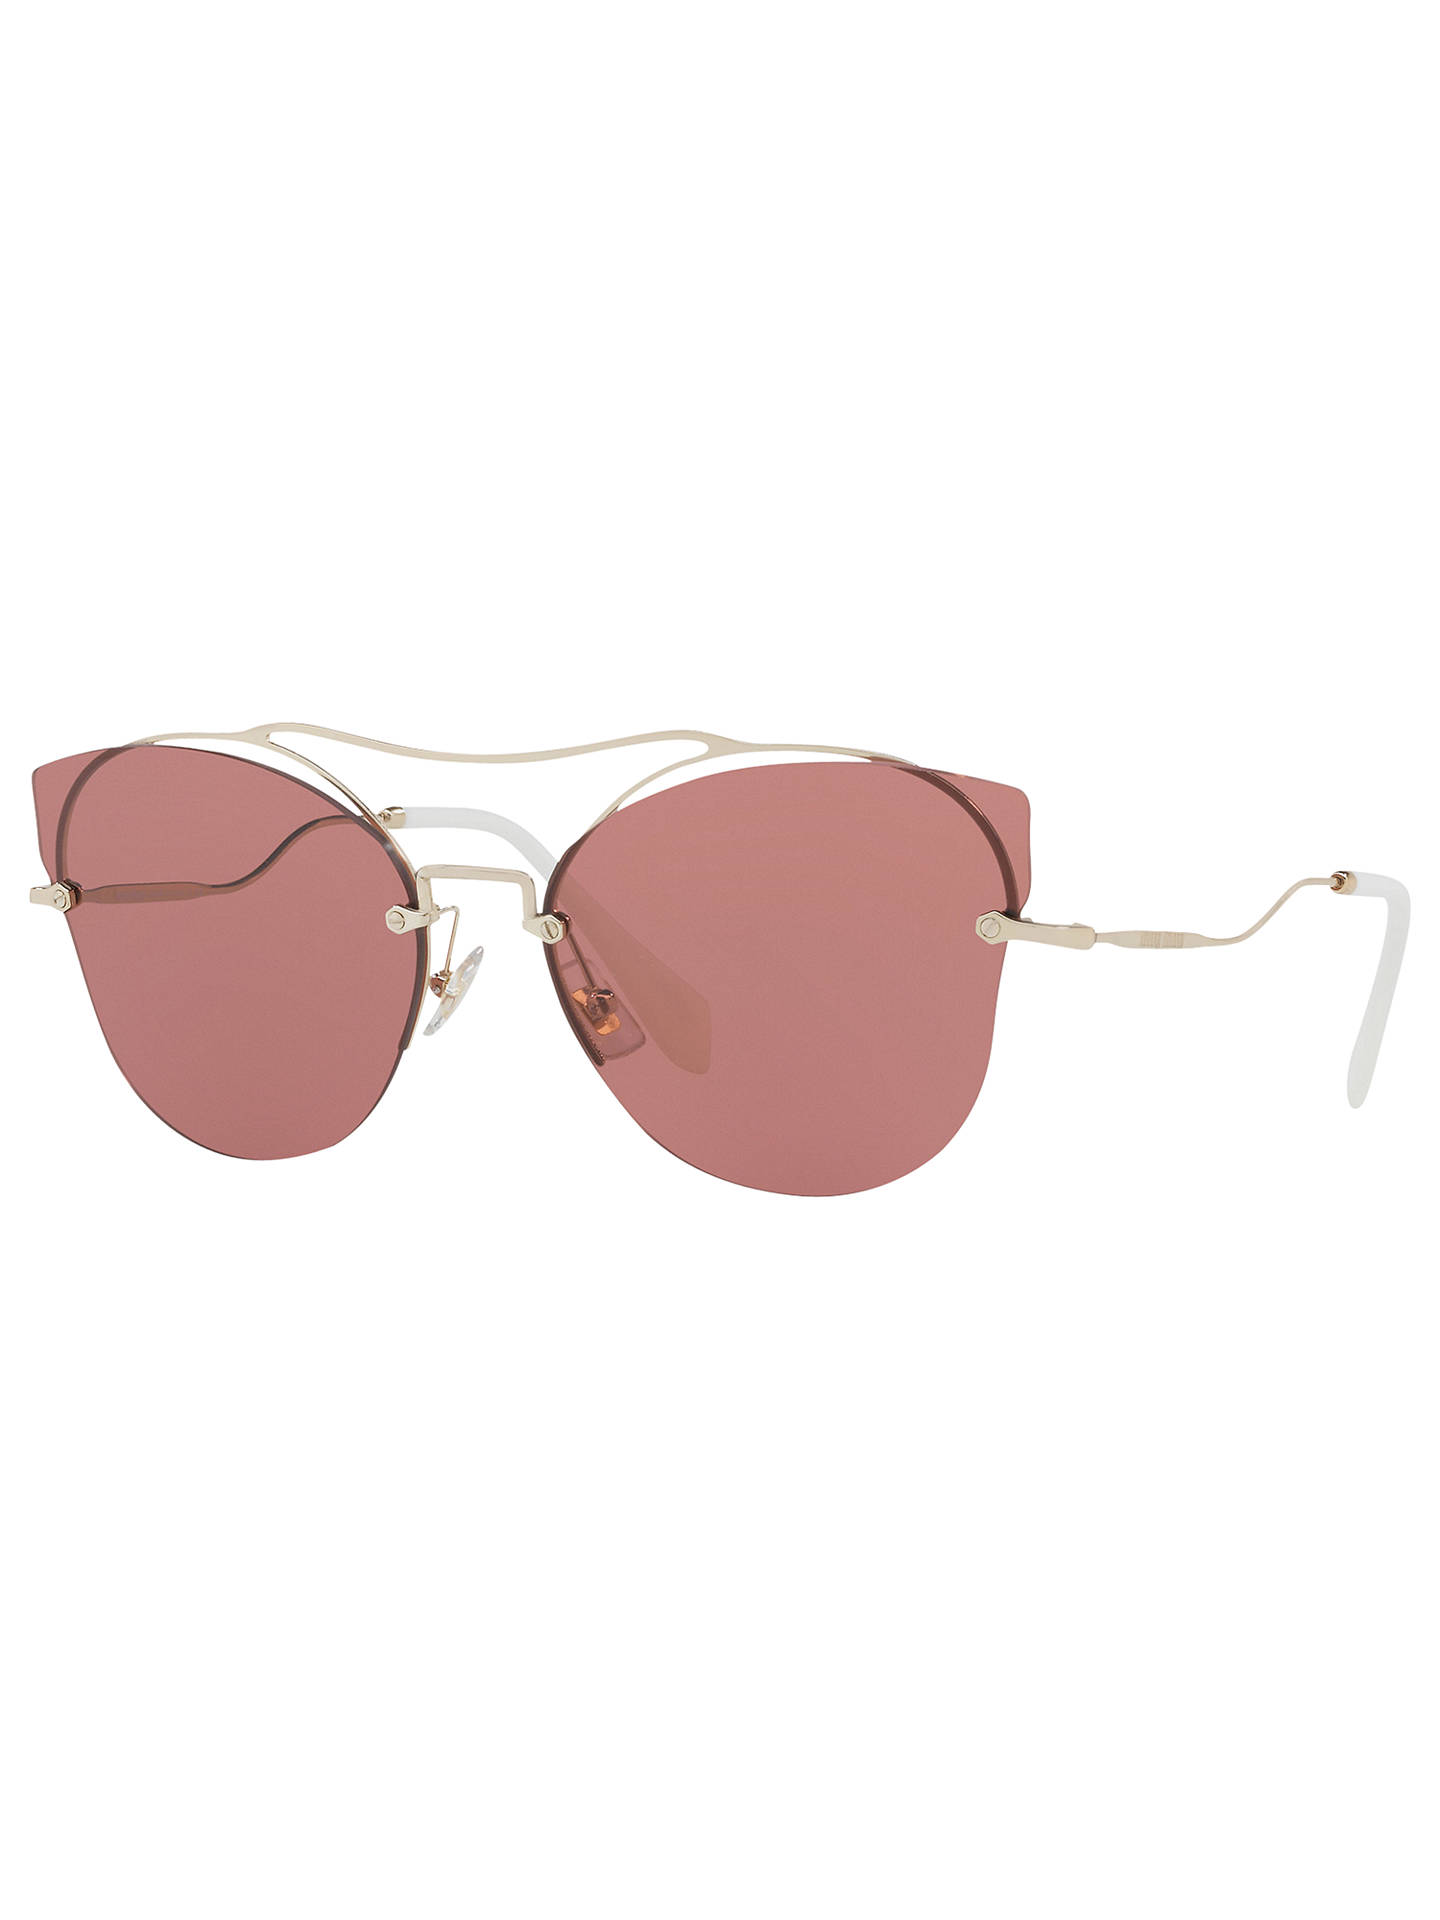 38634ef55ce Miu Miu MU 52SS Cat s Eye Sunglasses at John Lewis   Partners